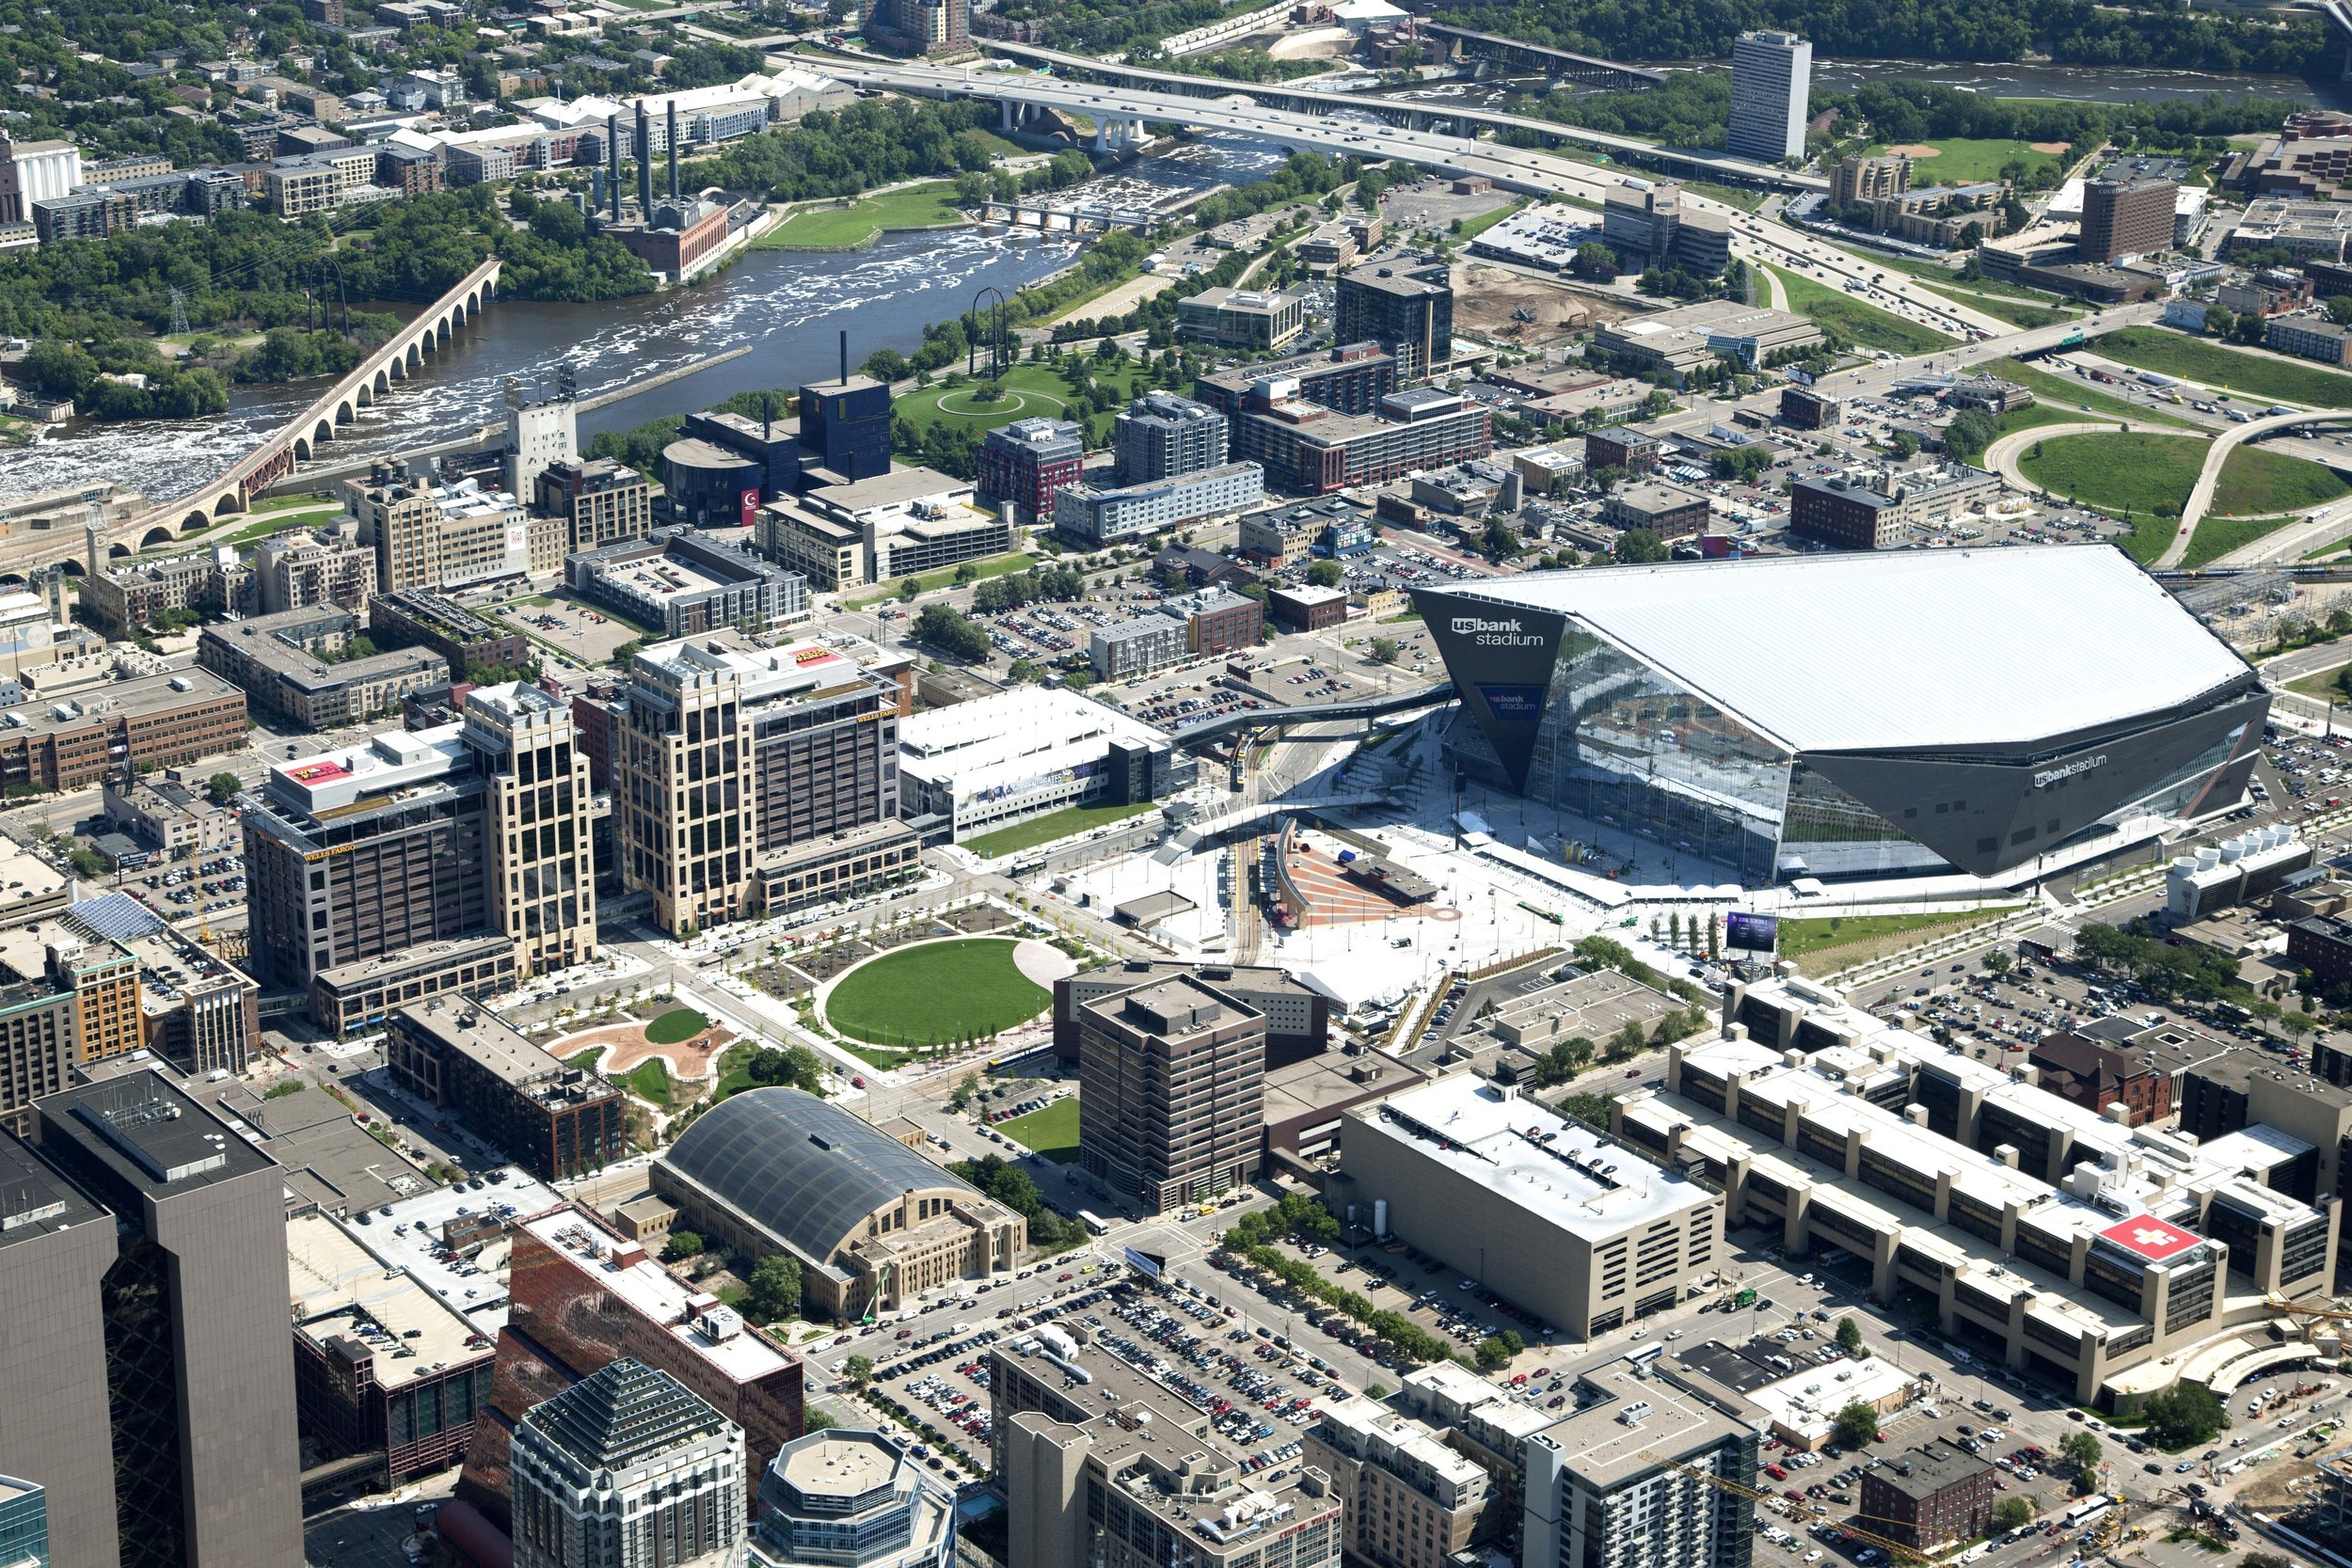 Image from snazzy City of Minneapolis press release linked below